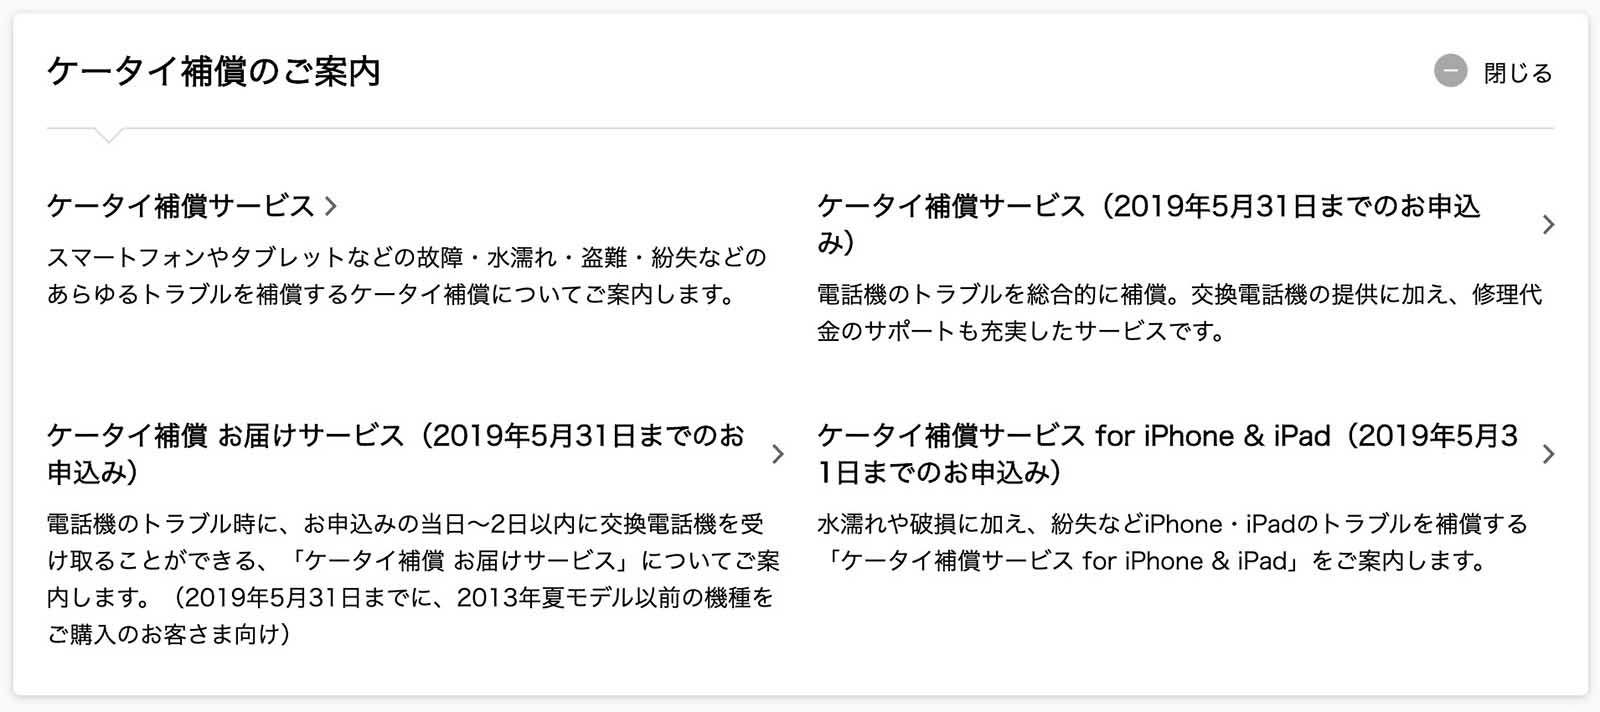 via https://www.nttdocomo.co.jp/support/product.html#compensation